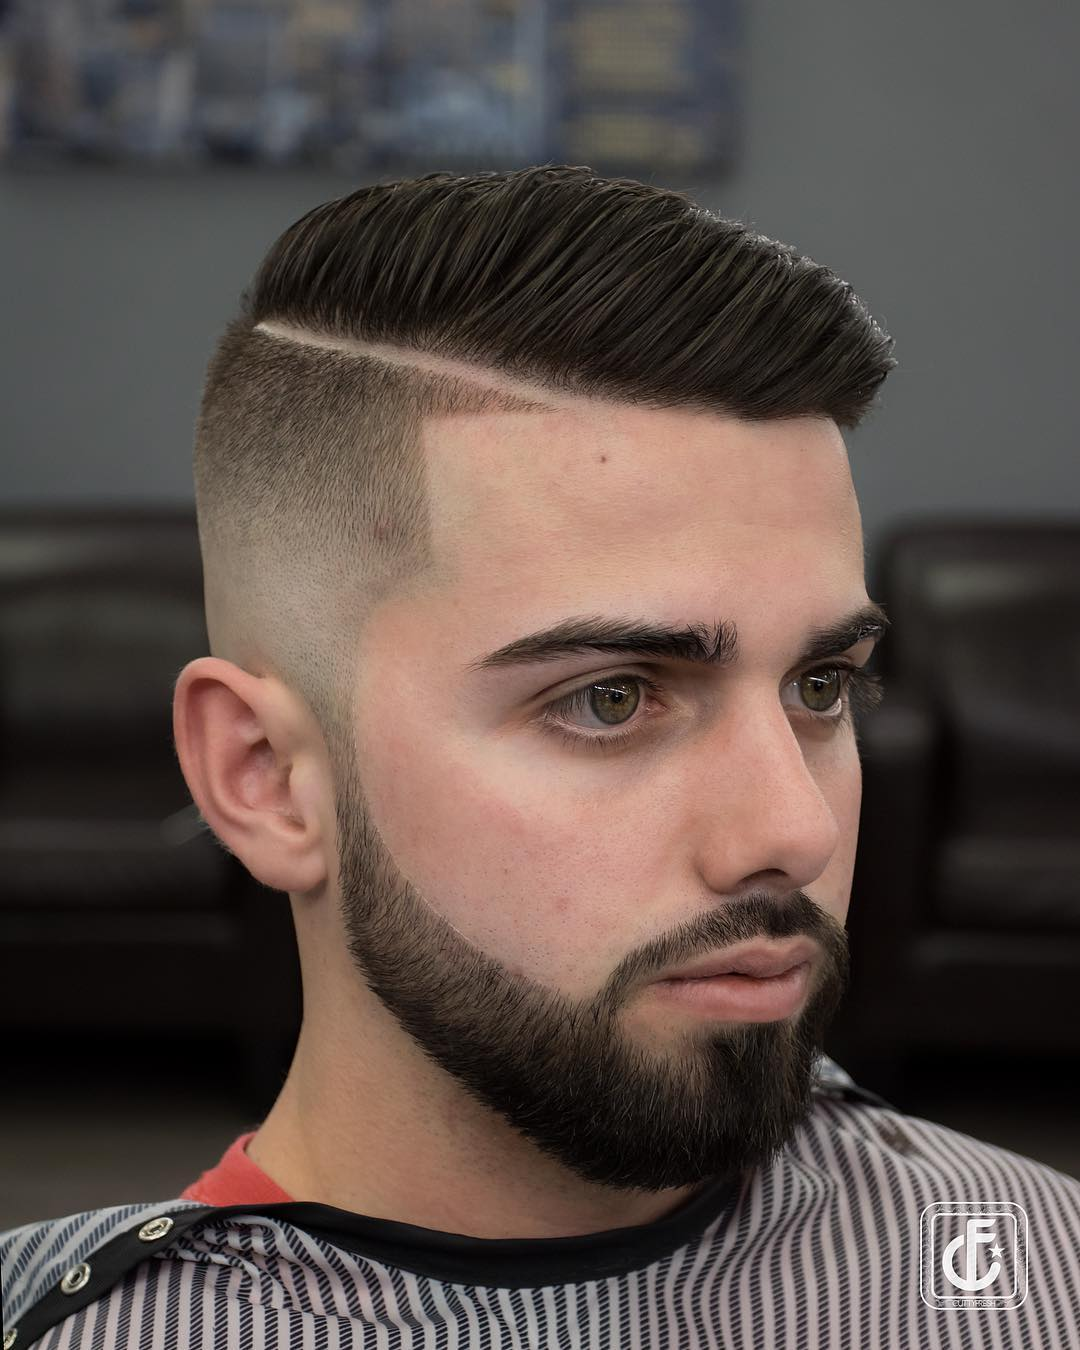 cuttyfresh cool comb over pompadour fade pompadour haircut